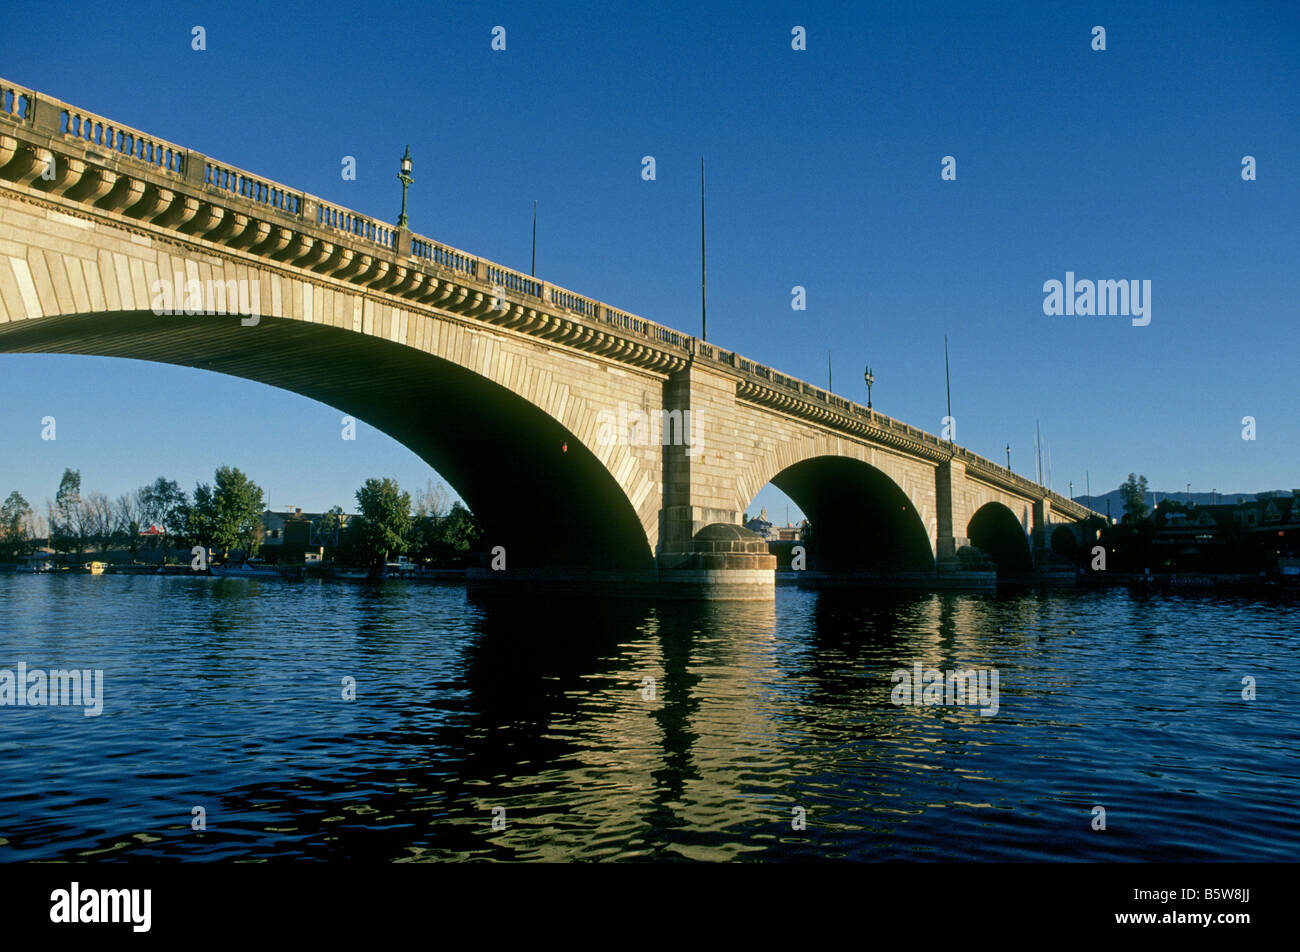 A View Of The Original London Bridge Which Is Now Erected Over An Arm Stock Photo Alamy